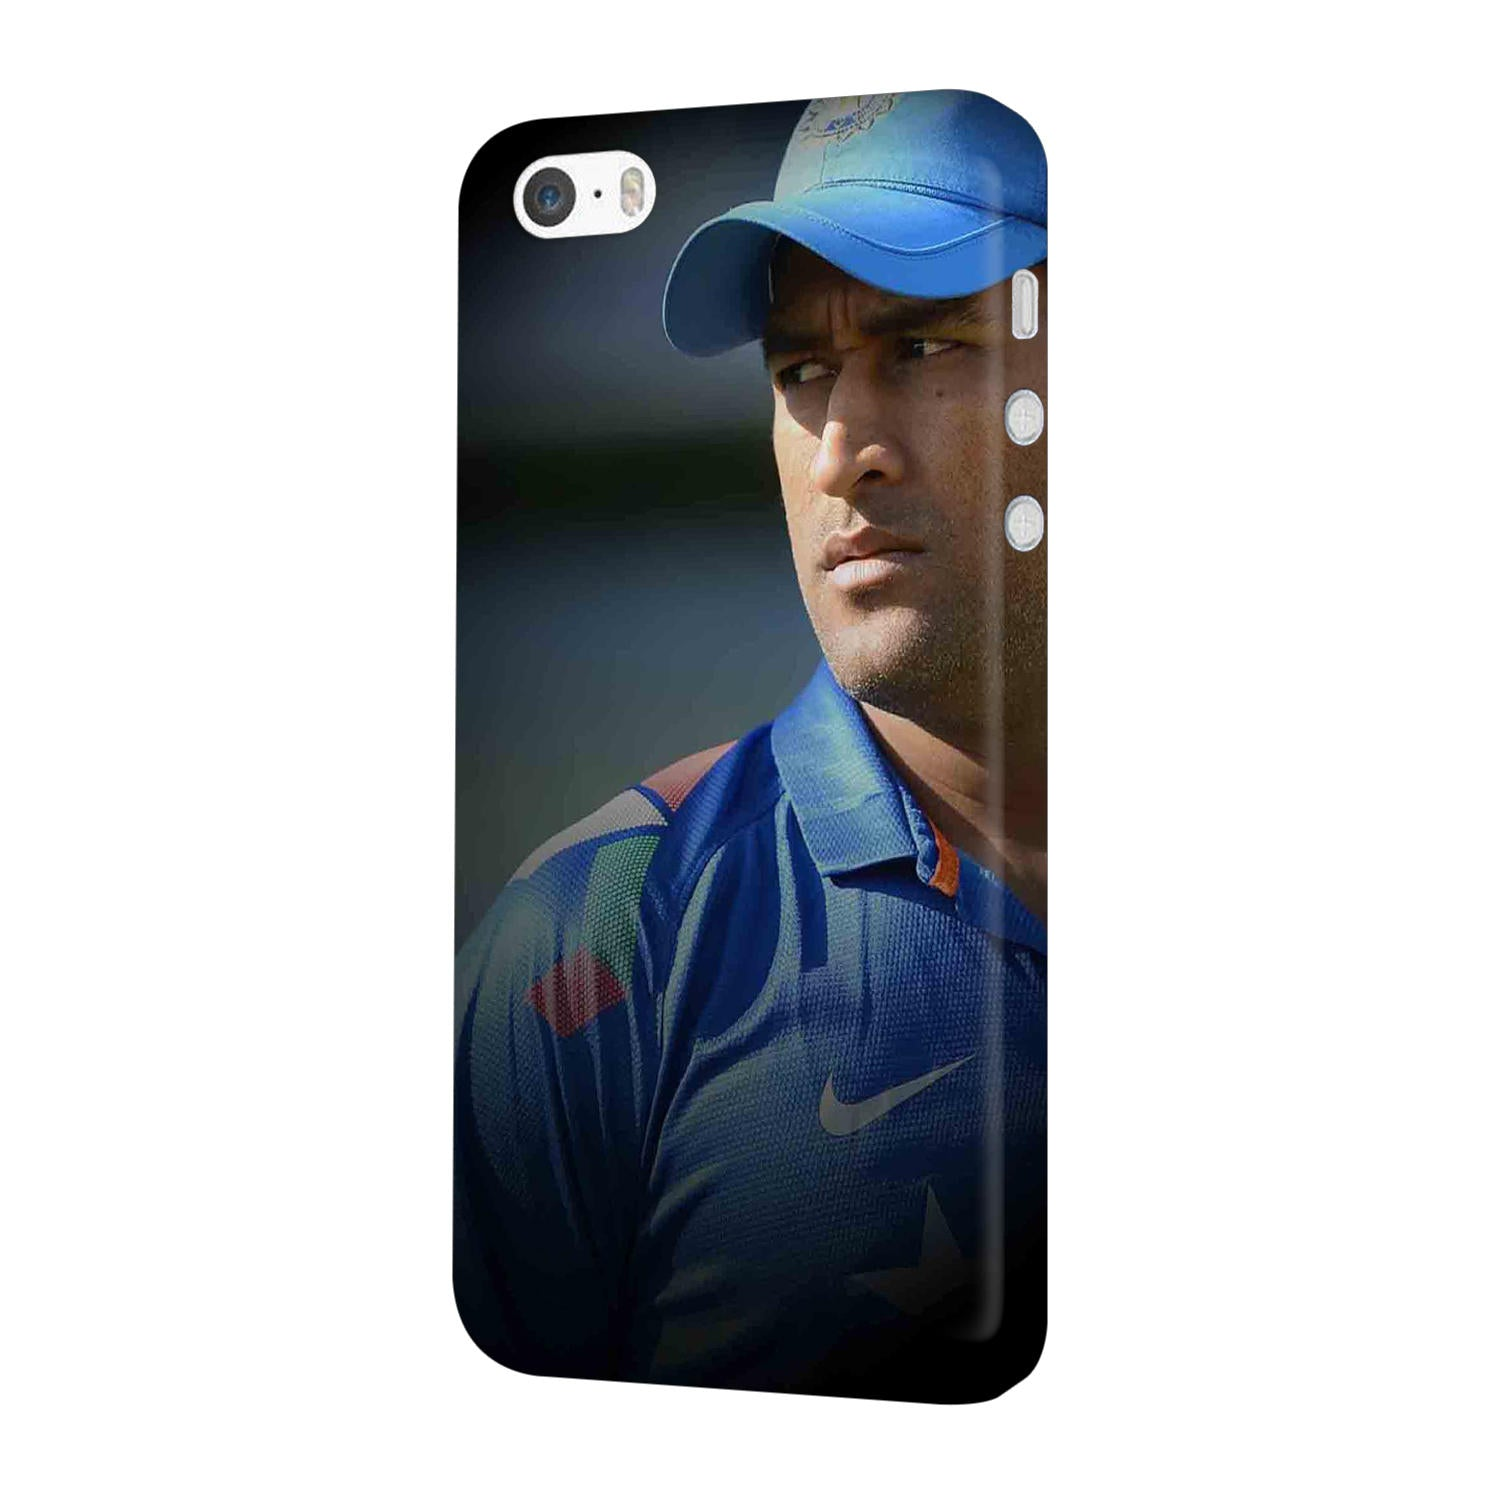 Dhoni Spotlight iPhone 5 Mobile Cover Case